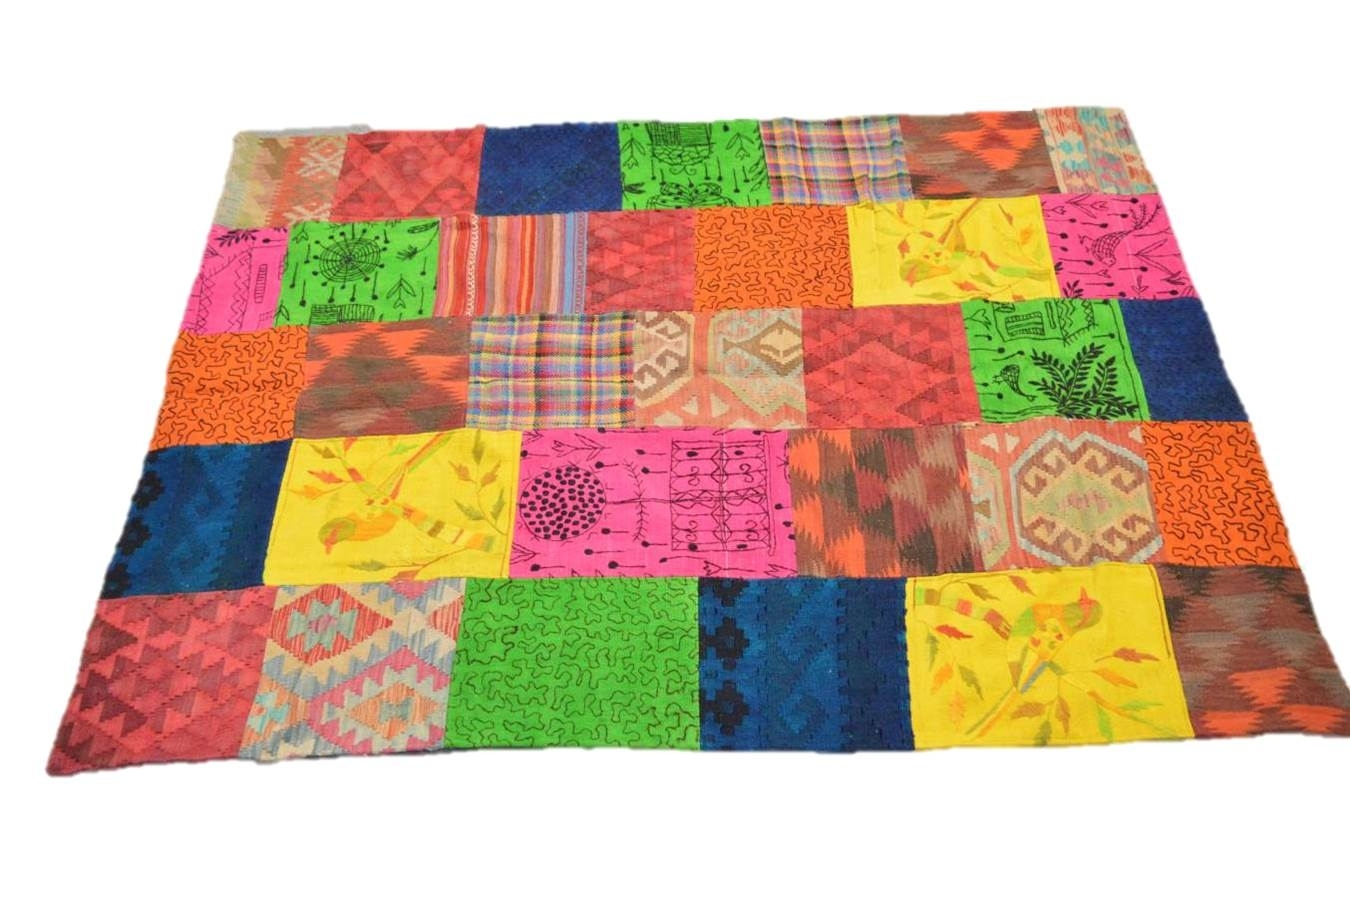 Tappeto Kilim Patchwork  10067 misura 234x170 cm cm cm | Up-to-date Styling  86d14e